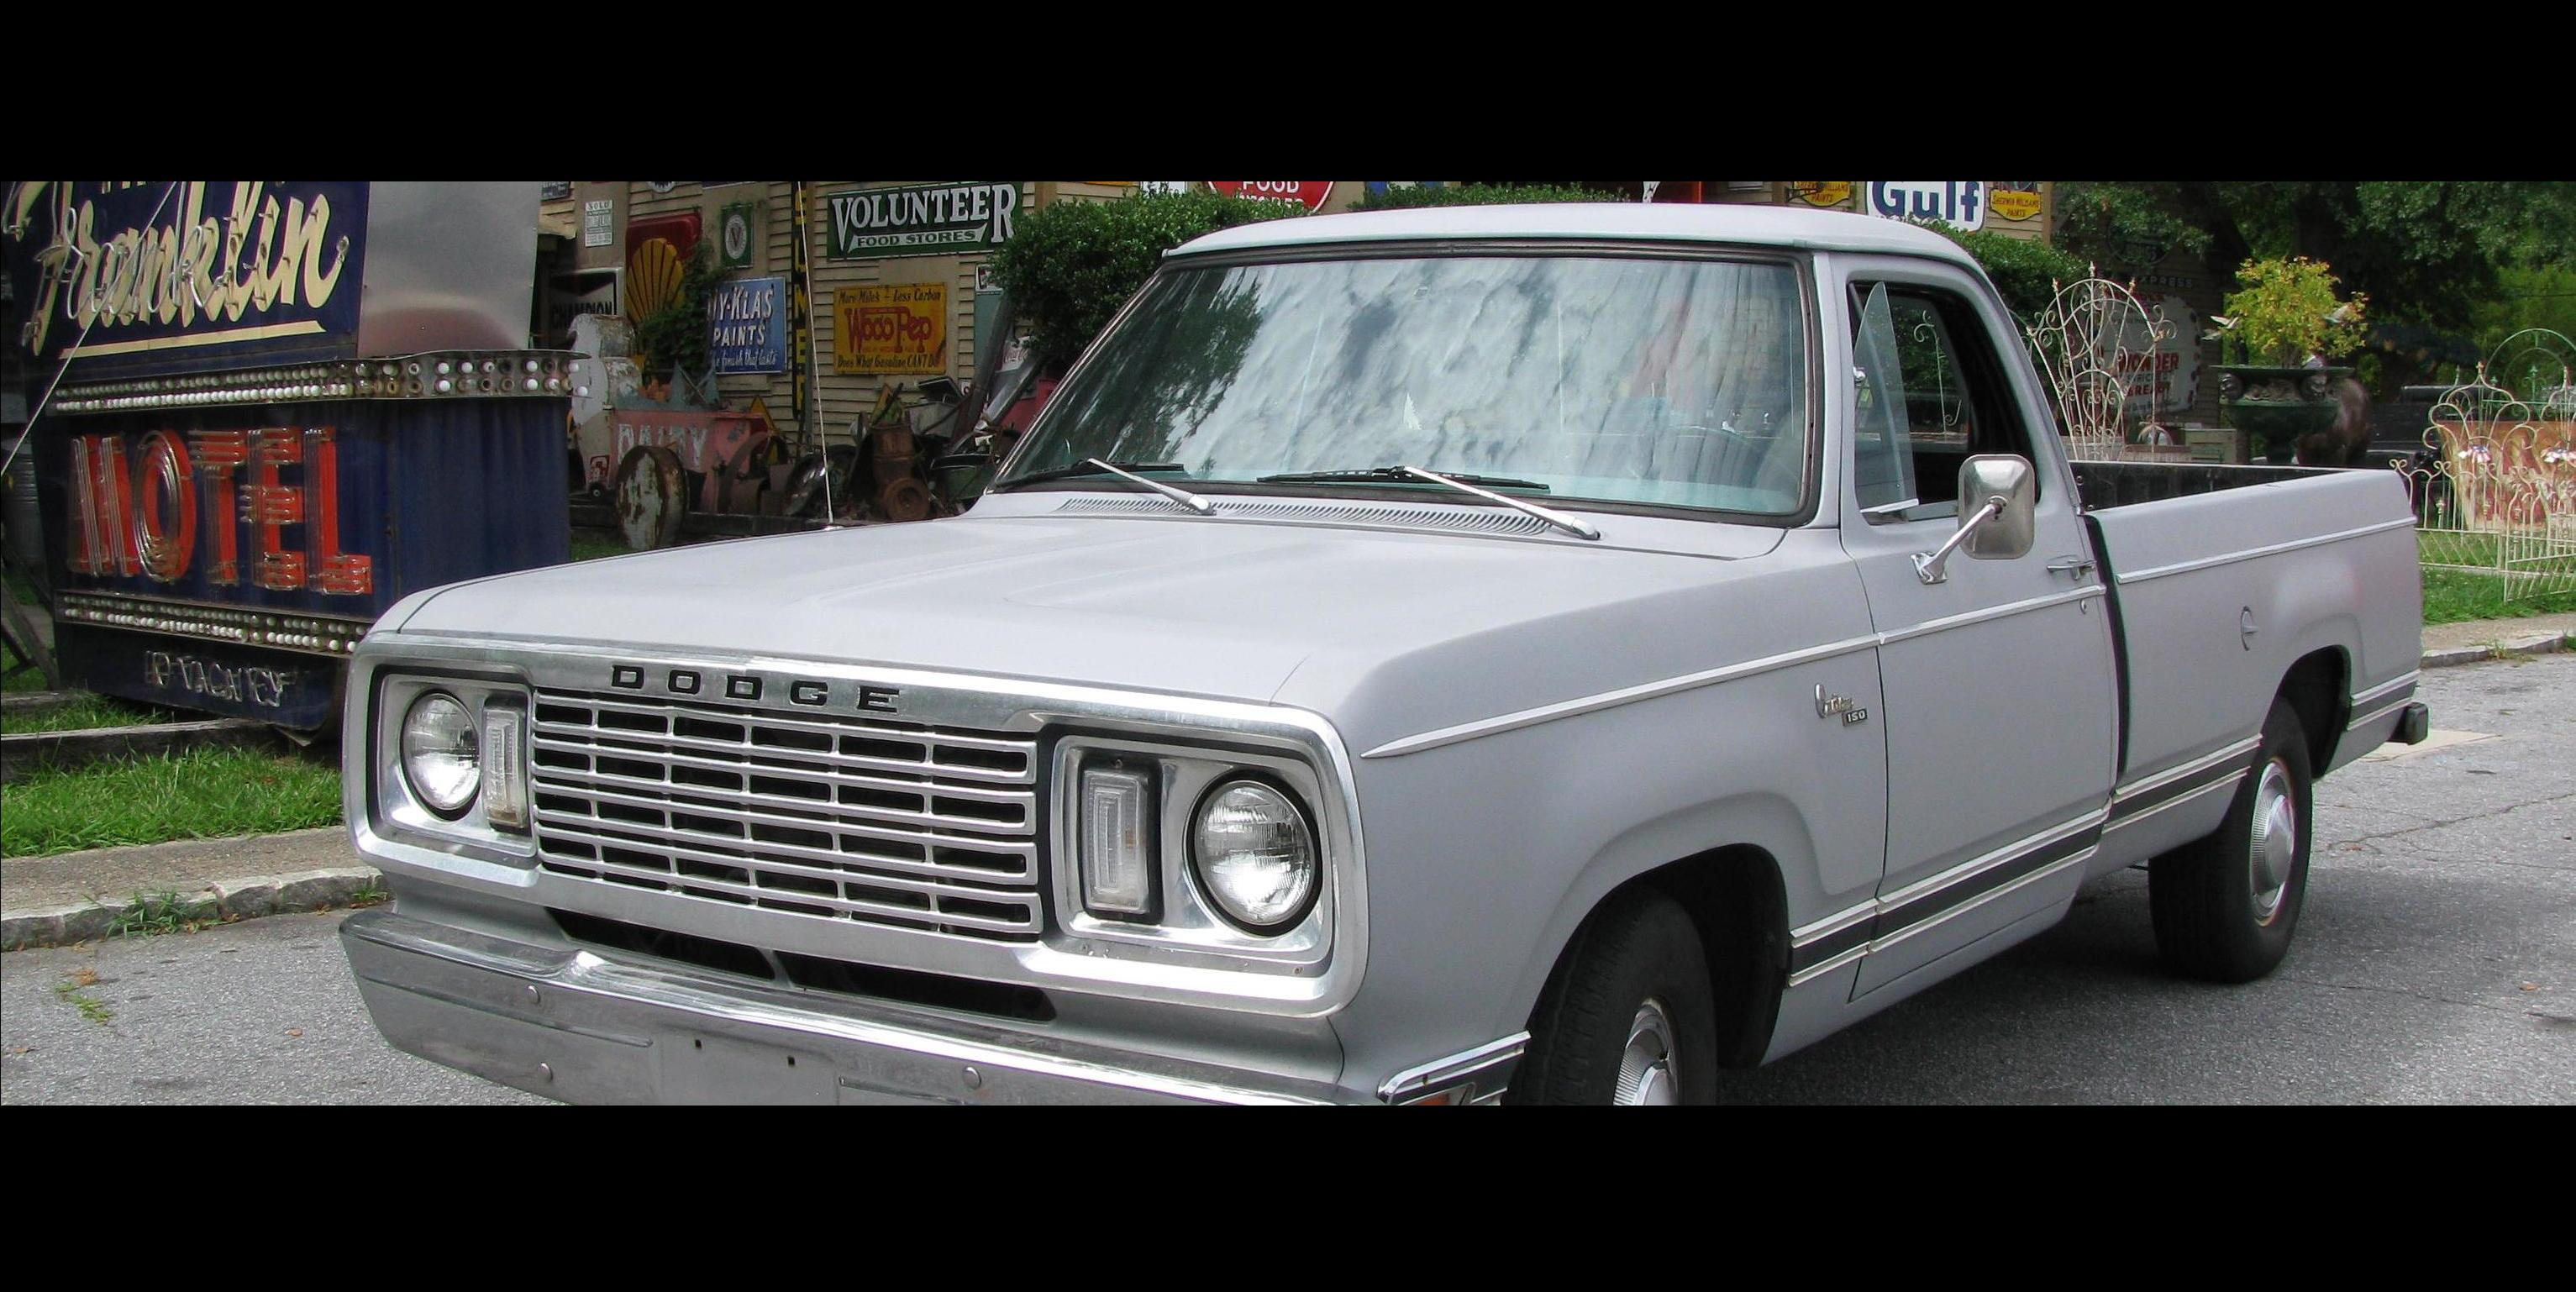 glenirah 1977 Dodge D150-Regular-Cab